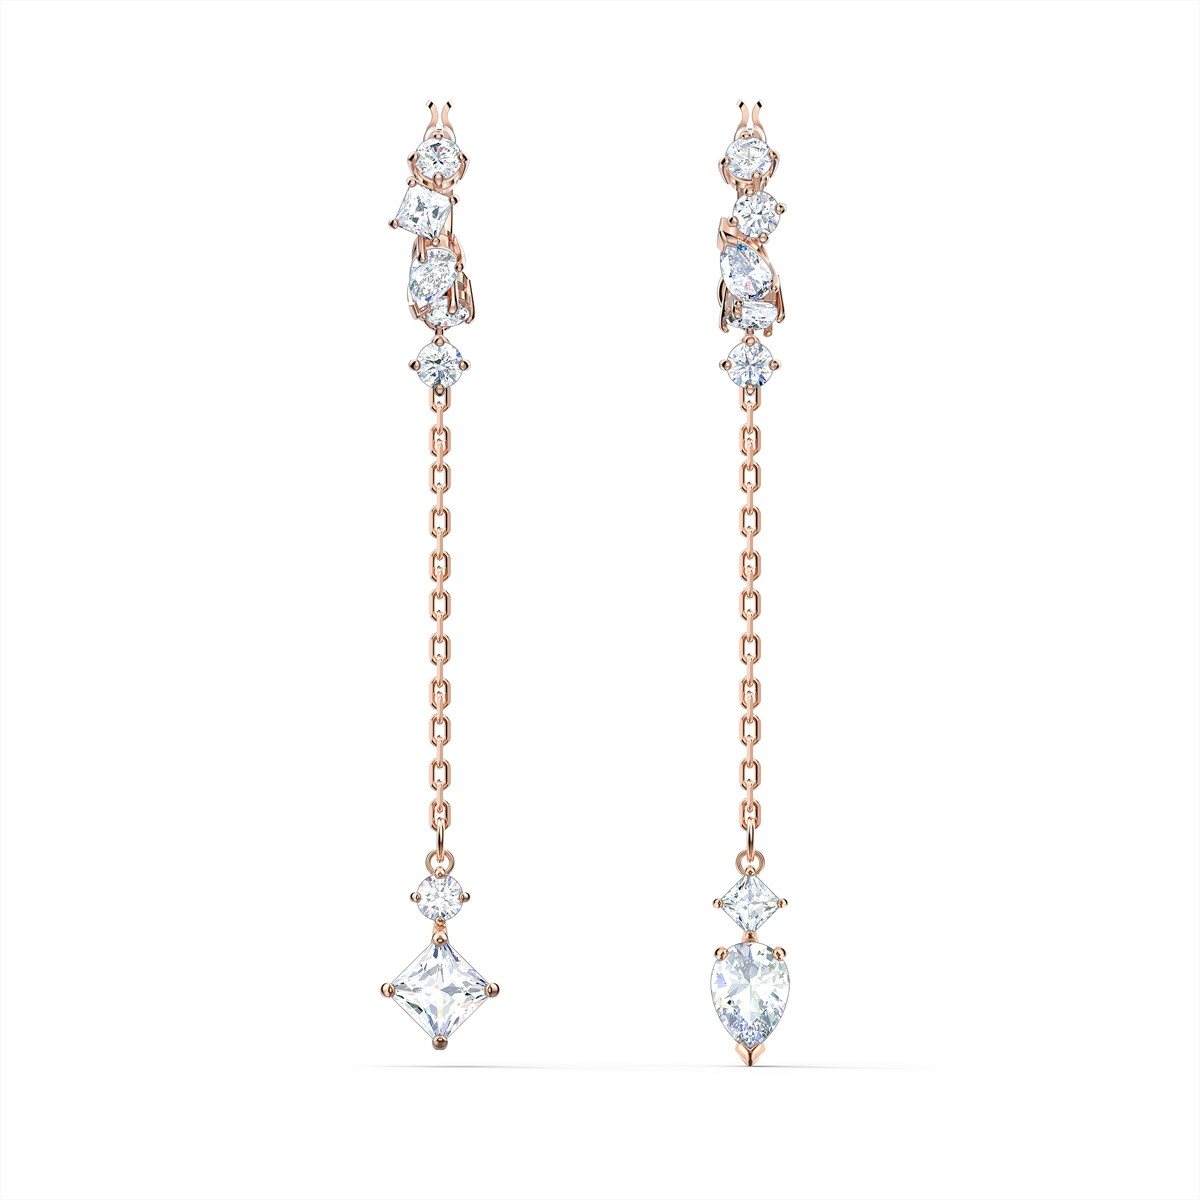 Swarovski Attract Pierced Earrings, White, Rose Gold Tone Plated